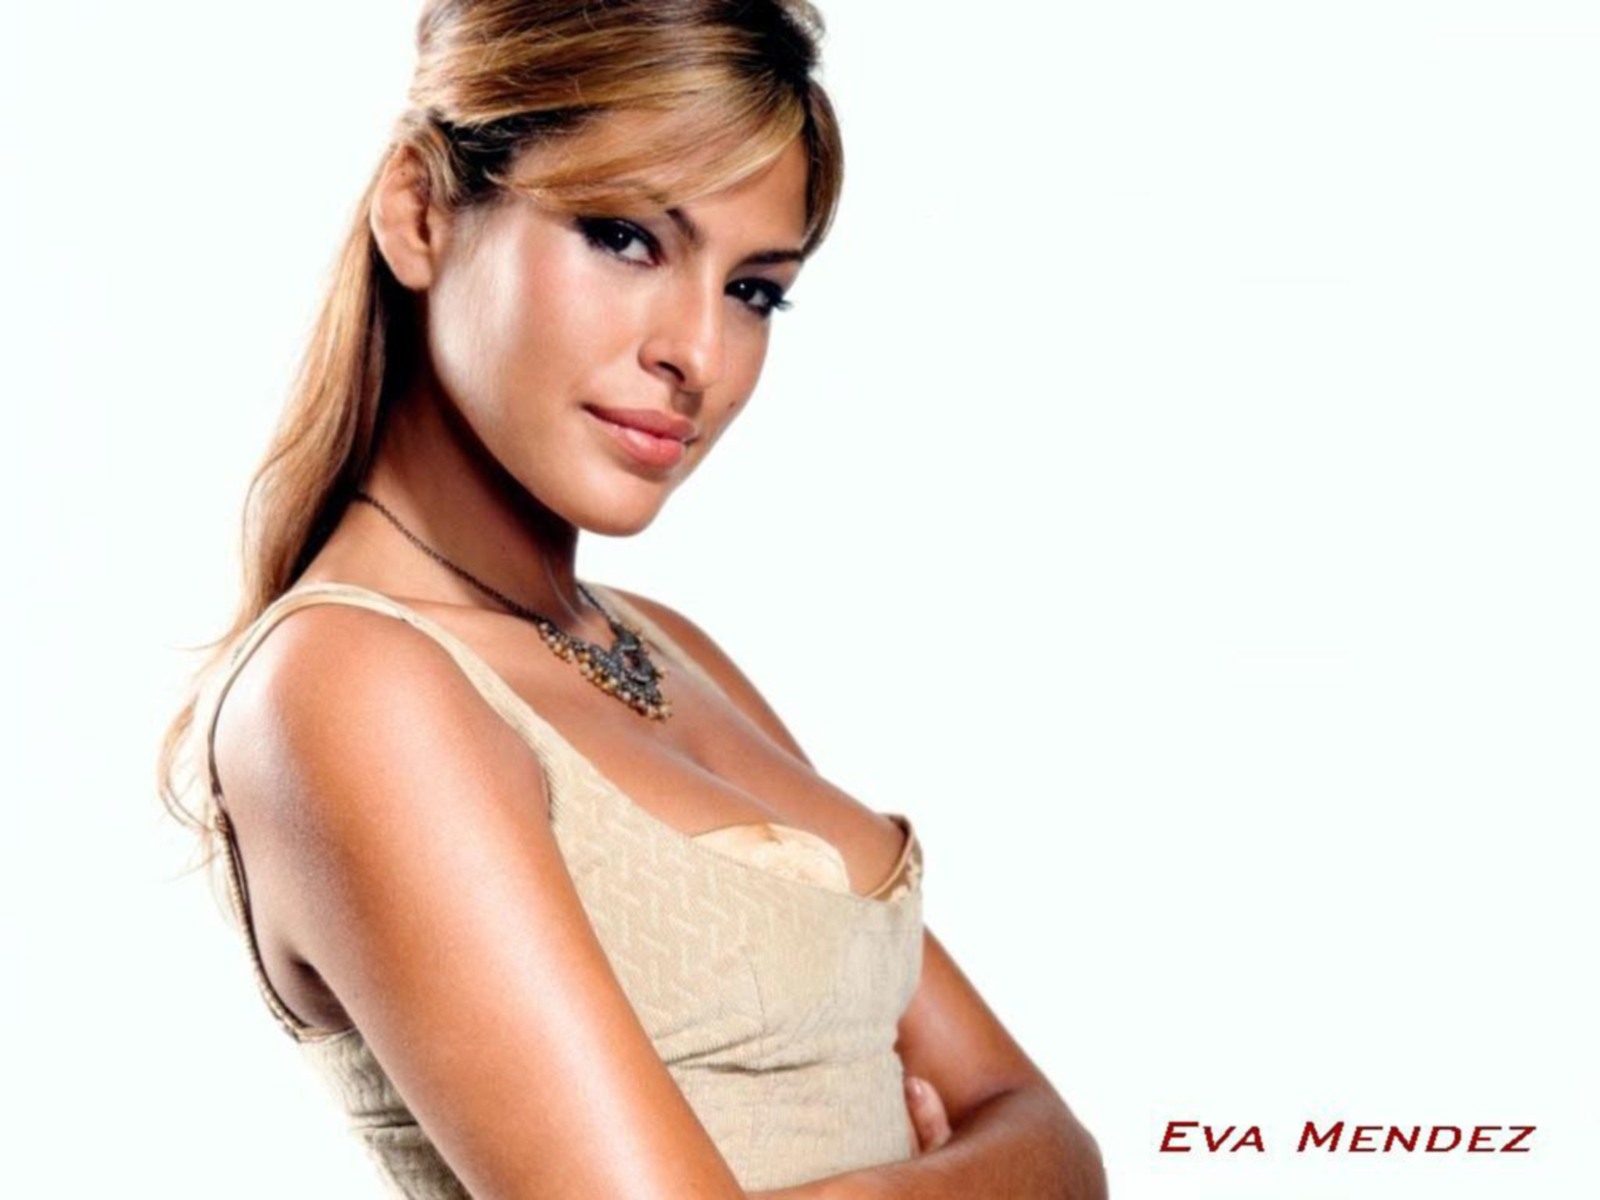 Beautiful Eva Mendes Wallpaper